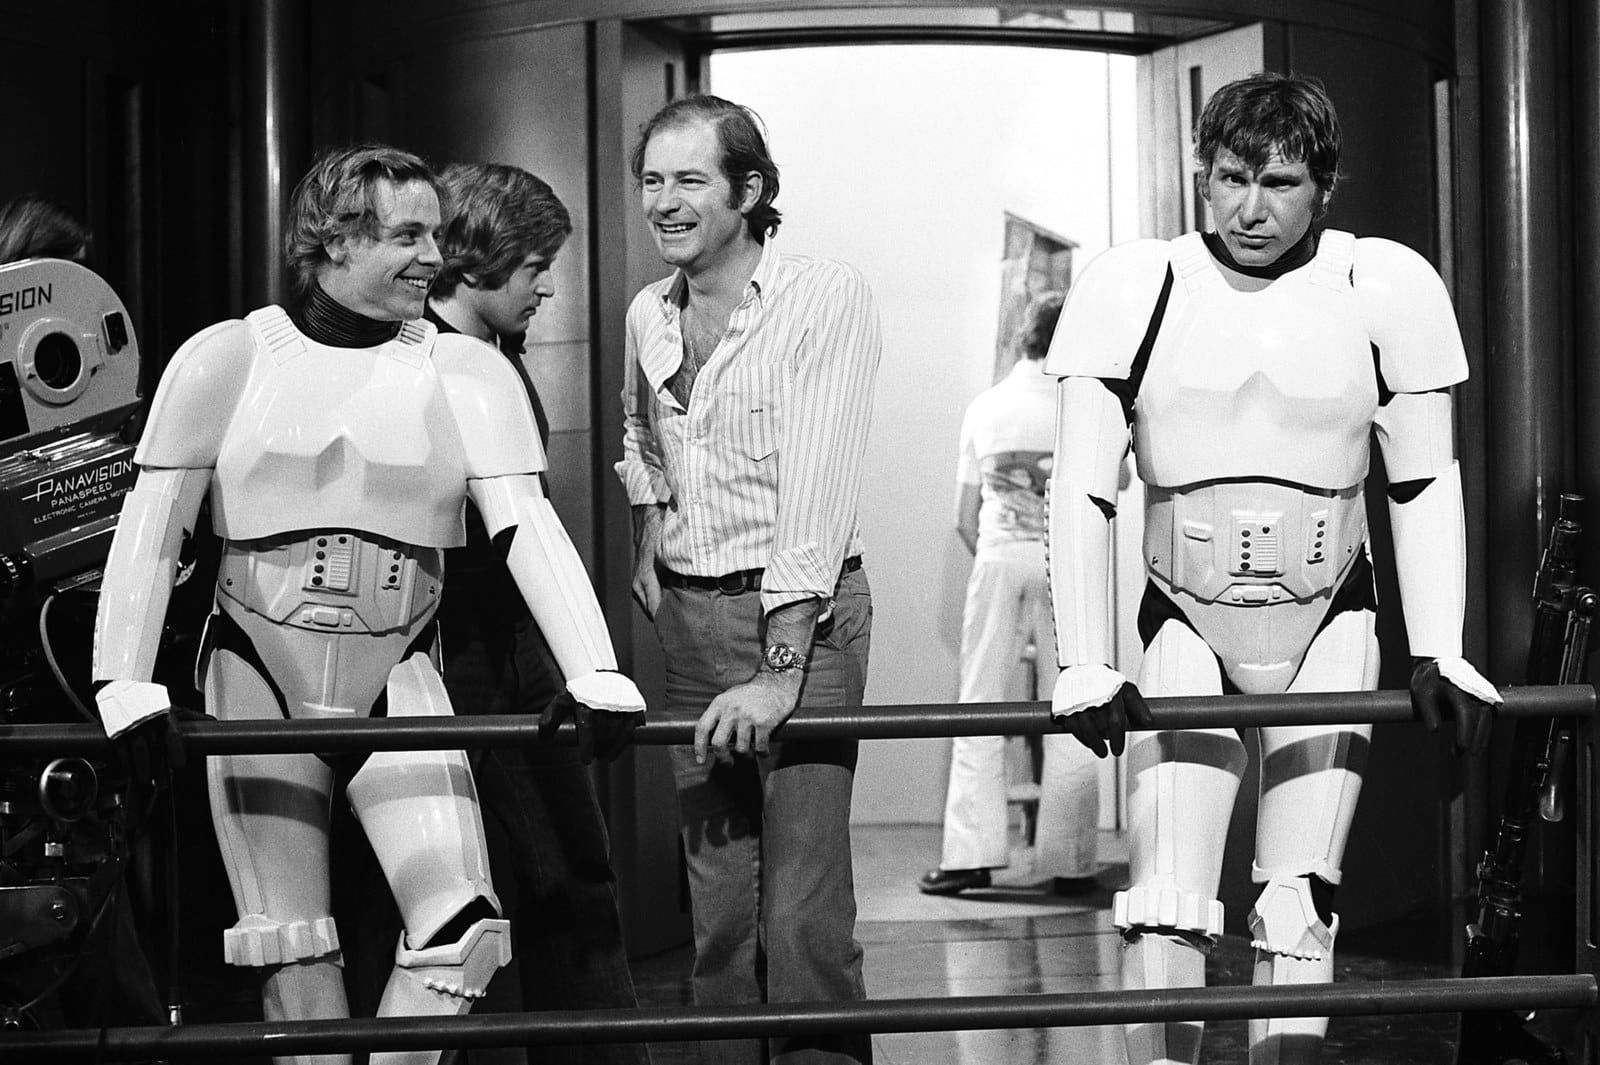 Mark Hamill and Harrison Ford in Stormtrooper gear between filming on the Death Star set.